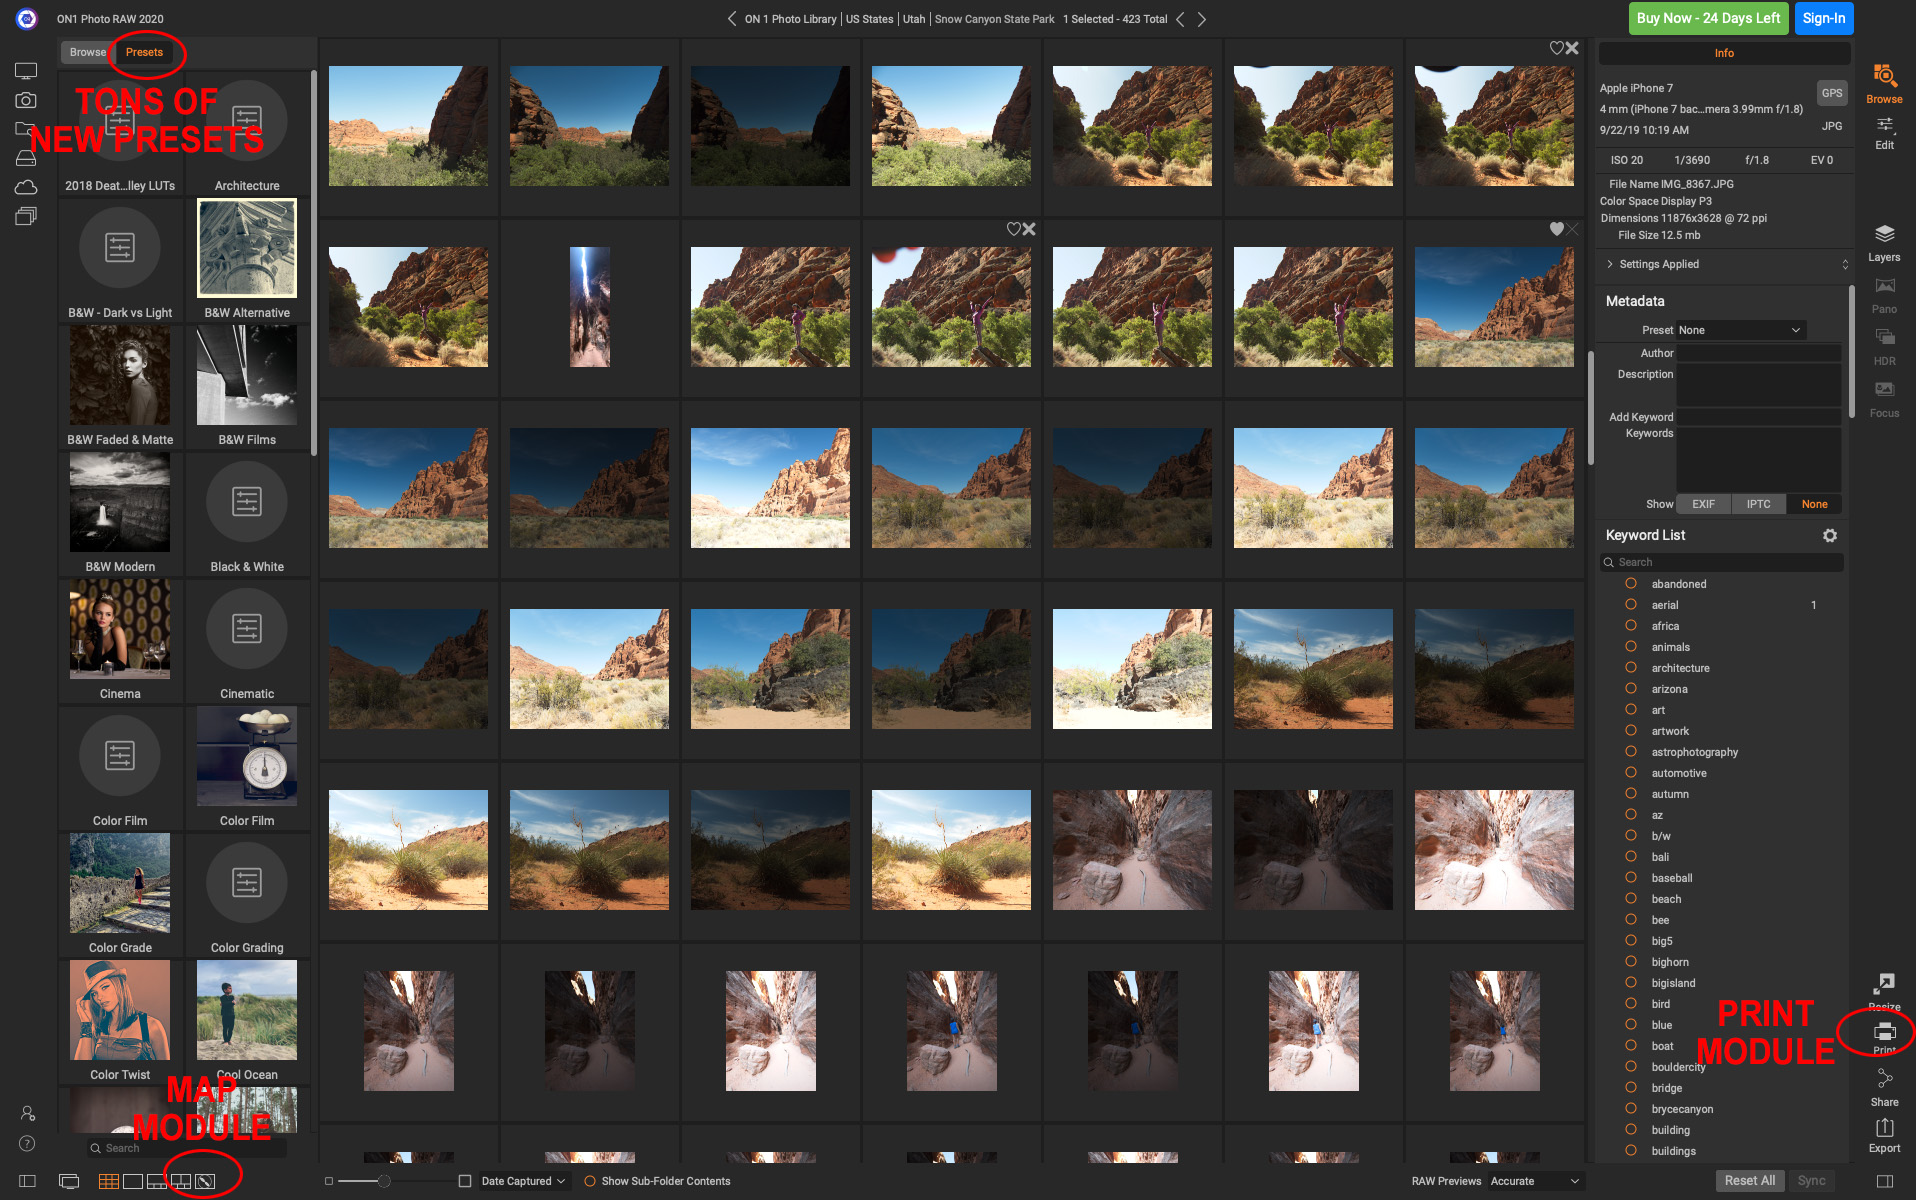 The Browse Module of ON1 Photo Raw 2020 showing some of the new features you'll notice when installing for the first time